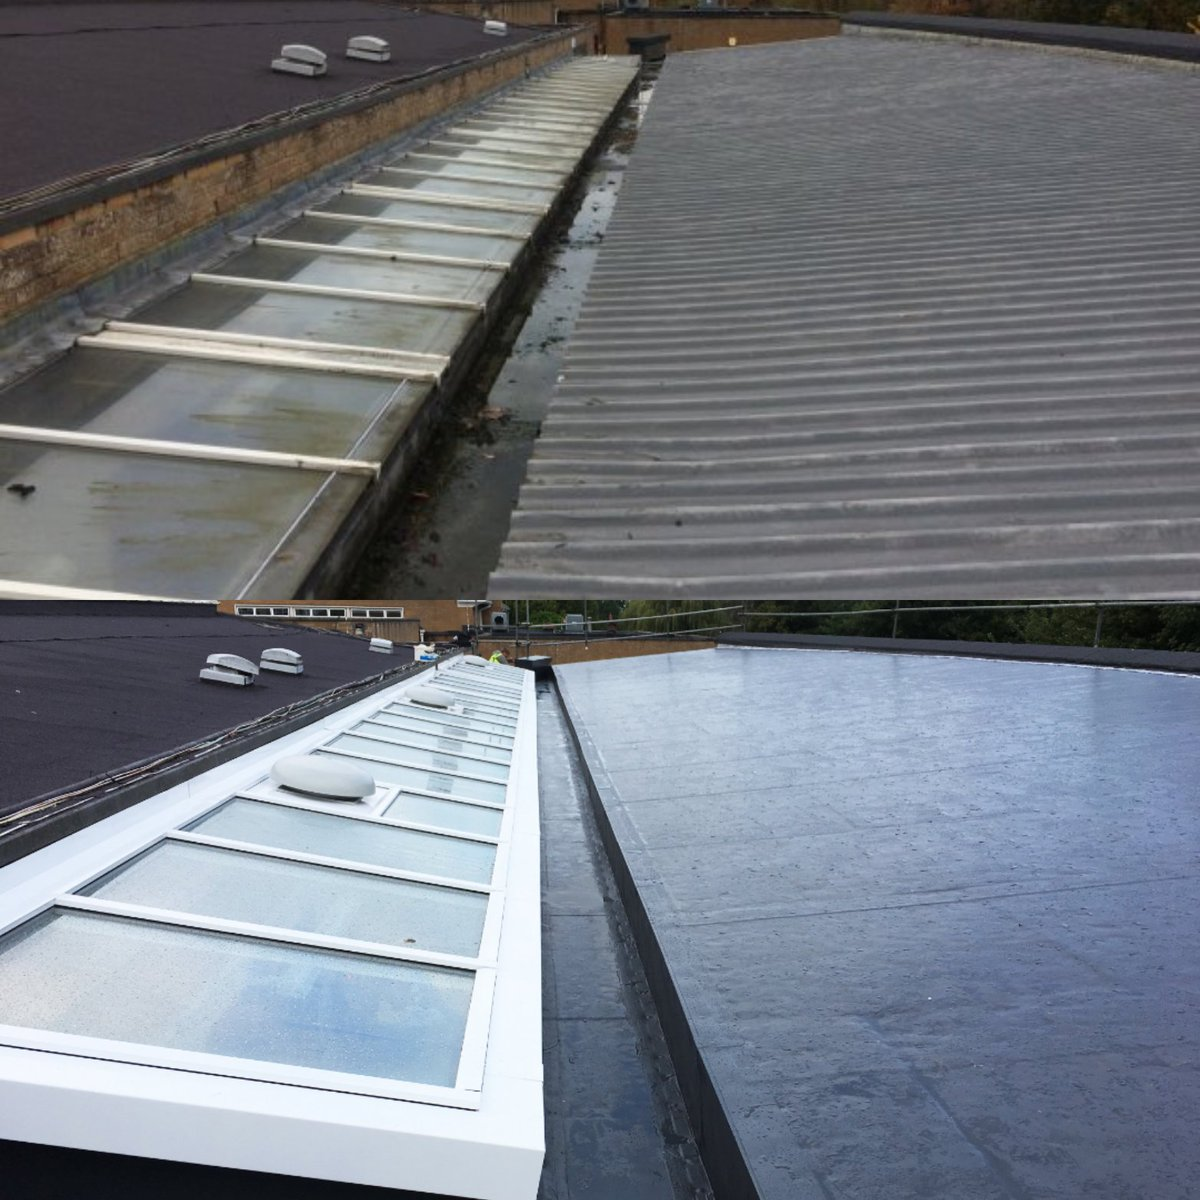 Bauder Flat Roofs On Twitter Our Profiled Roof Overlay System Is The Ideal Solution For Waterproofing Profiled Sheet Metal Roofs And Upgrading Their Thermal Properties Its Bespoke Eps Insulation Board And Single